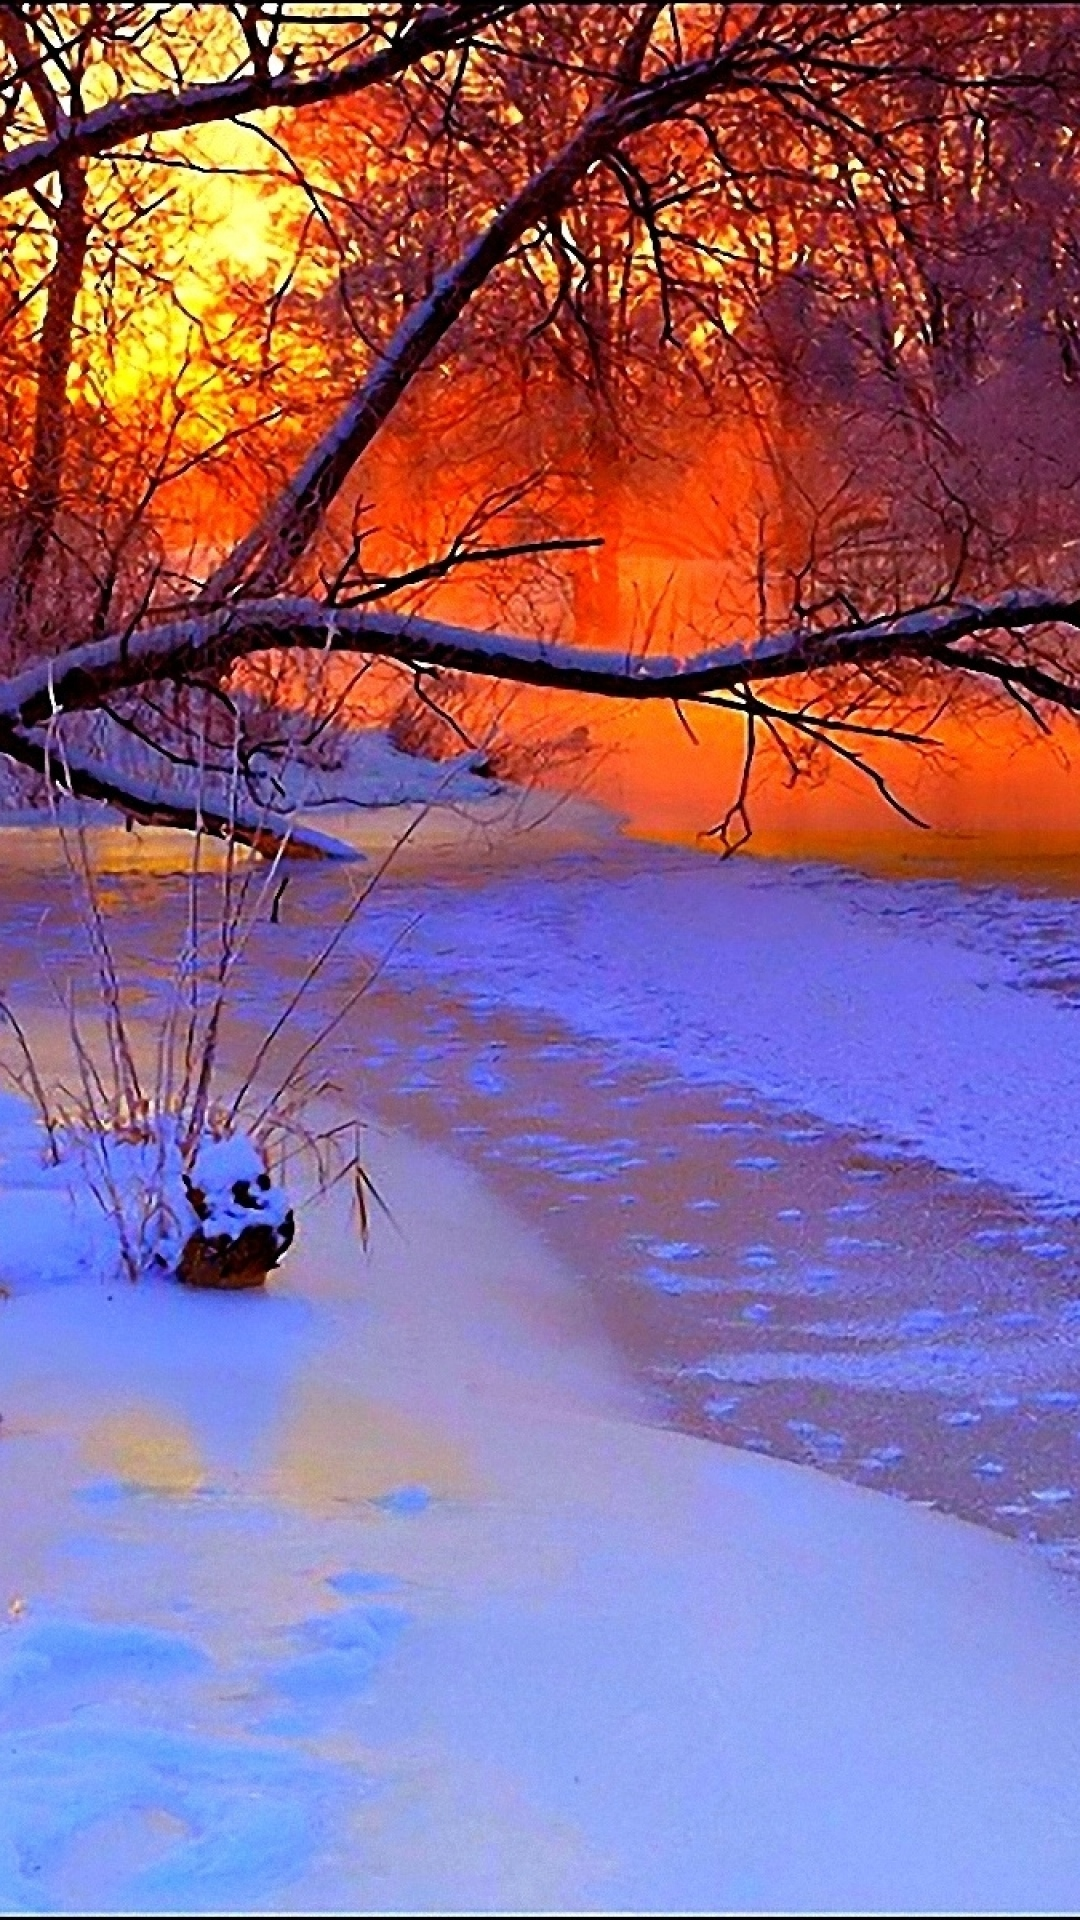 1080x1920-winter-sunset-evening-branches-tree-pond-cold-snow-wallpaper-wp360638